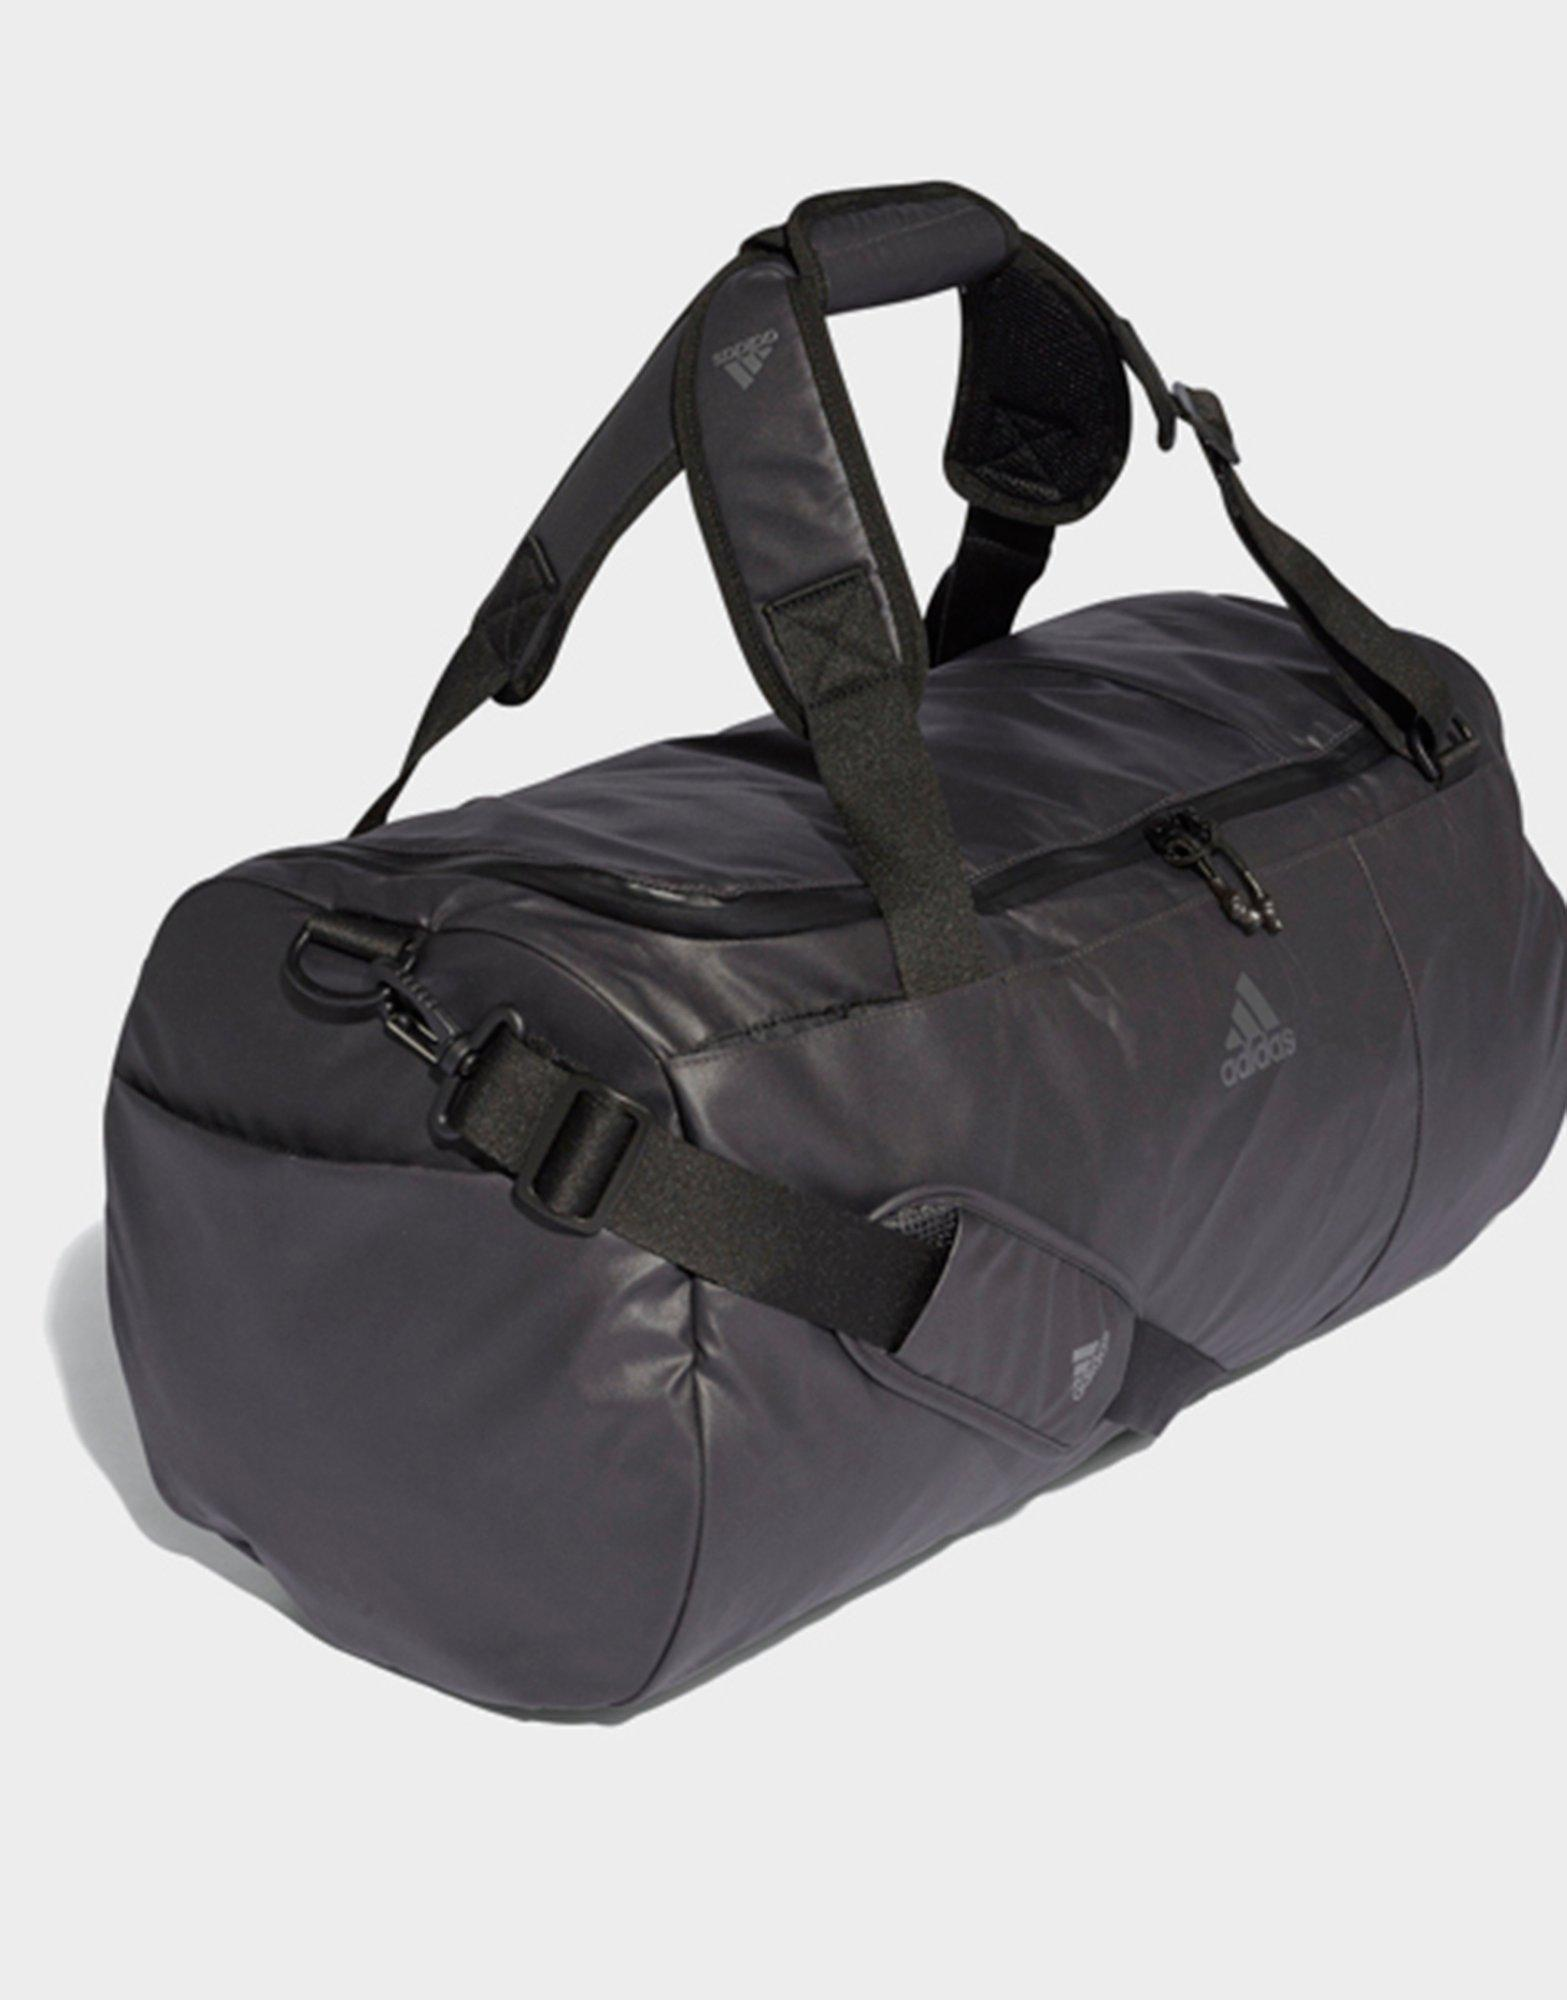 201b031d7b15 ... Lyst - Adidas Training Convertible Top Team Bag in Black for huge  selection of ad9fb 58427 ...